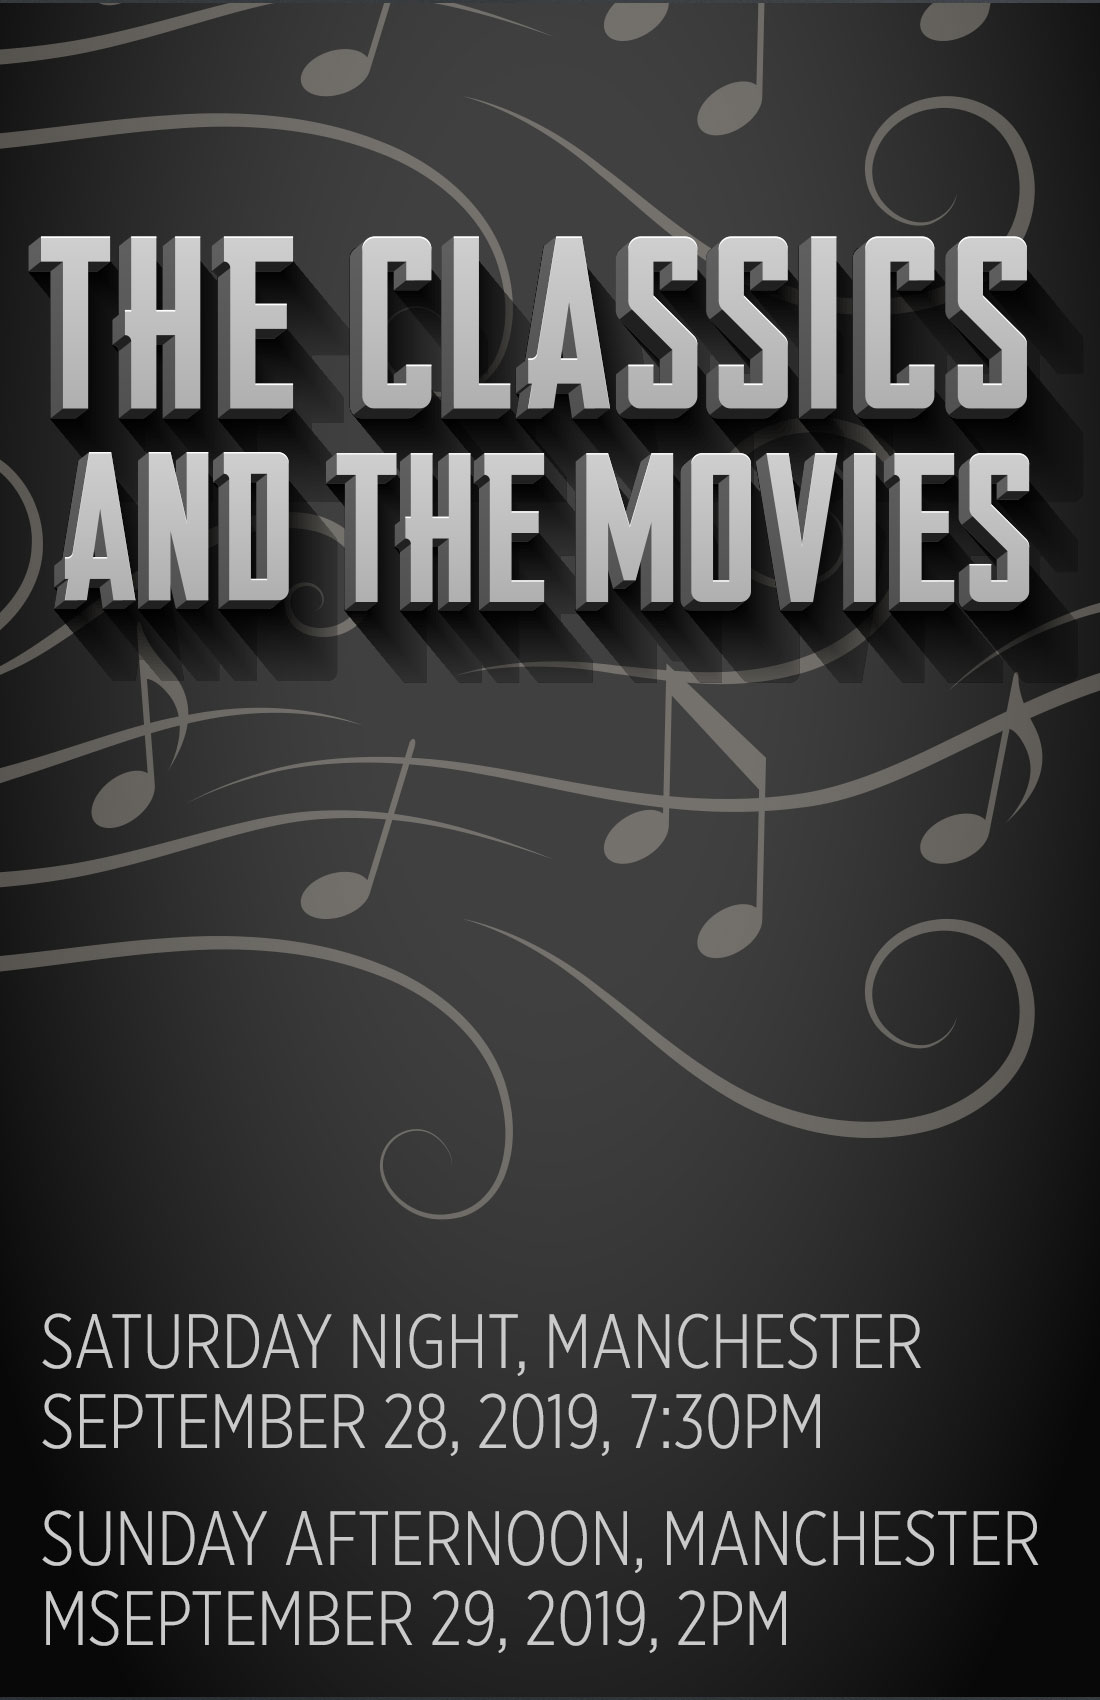 Classics and the Movies